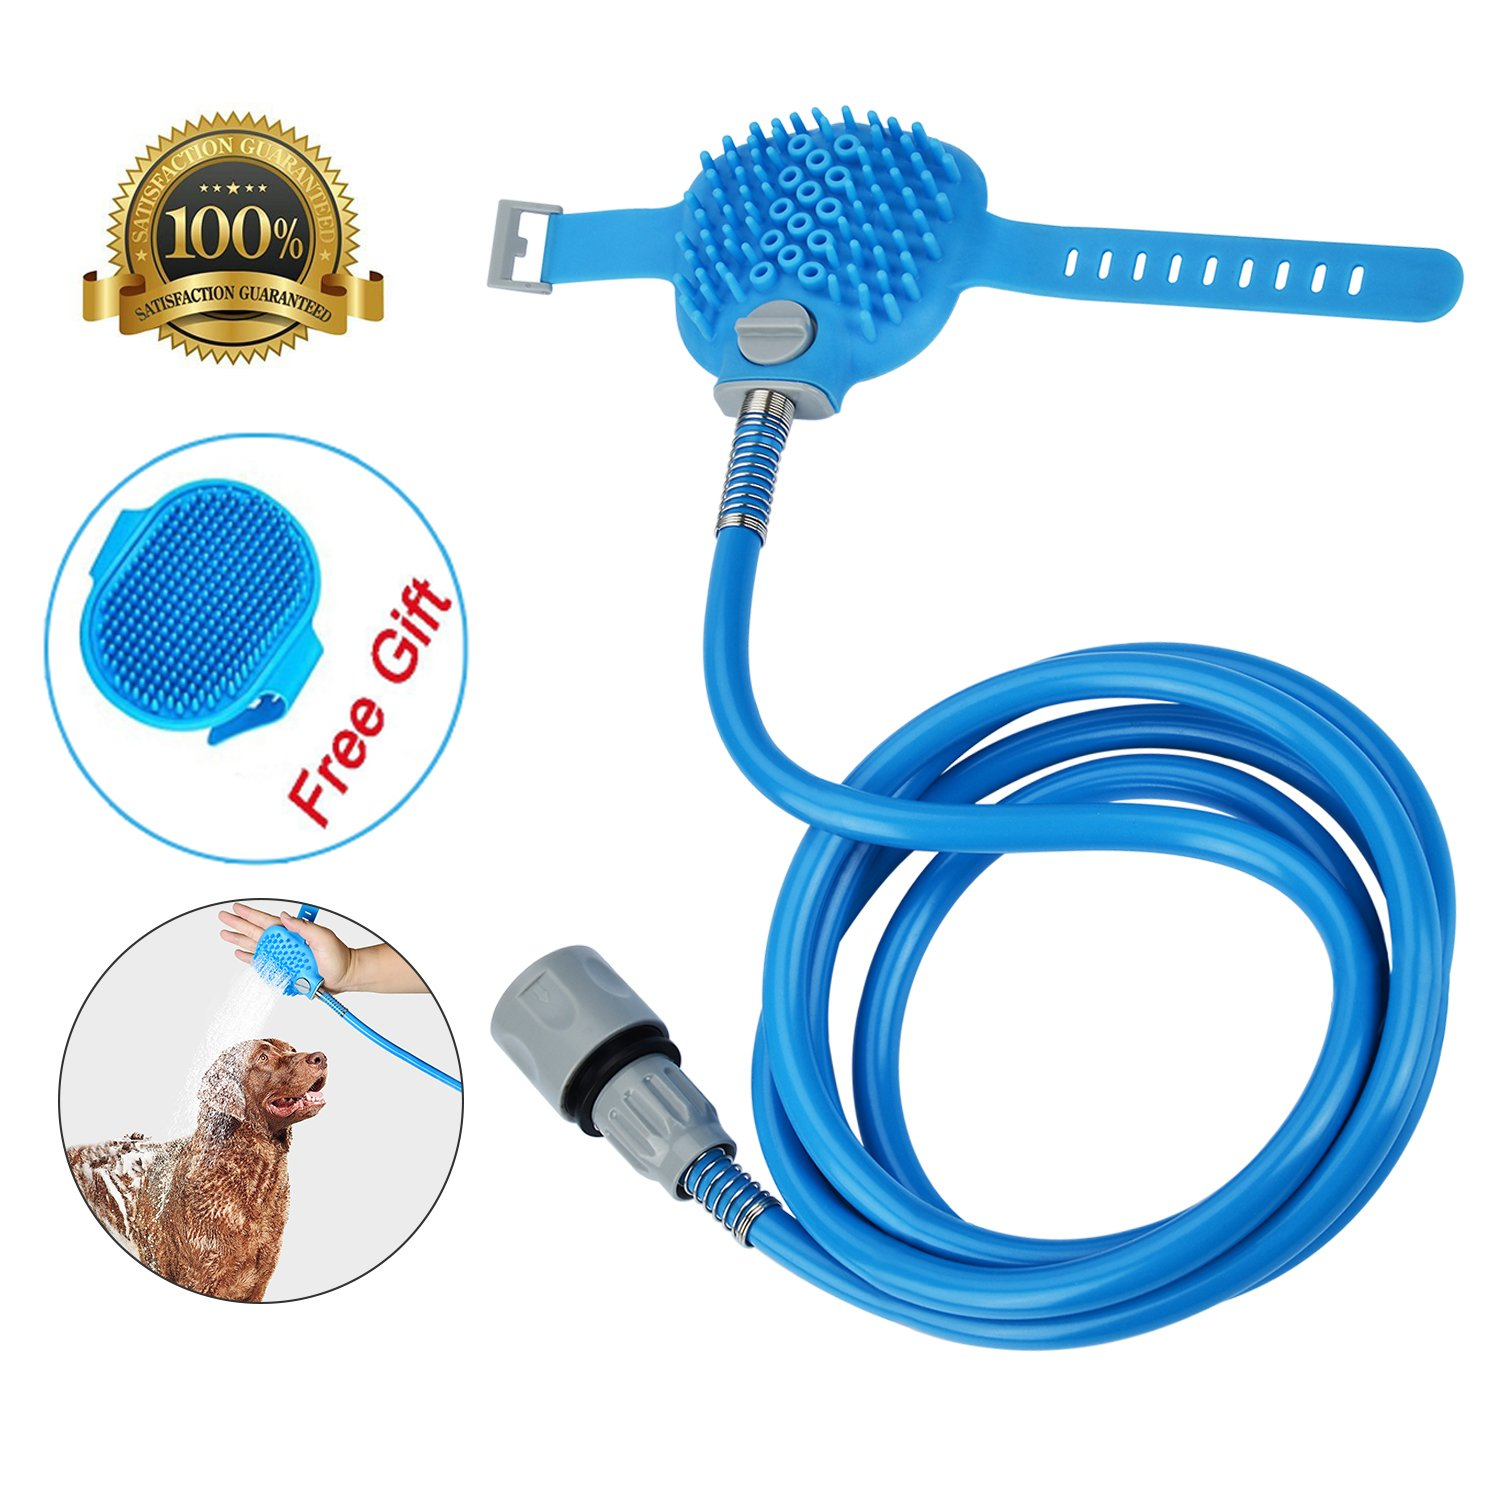 MABOLON Pet Shower Sprayer-Pet Bathing Tool for Dog, Multi-Functional Combination Shower Sprayer and Scrubber with Massage Glove, Indoor and Outdoor Use